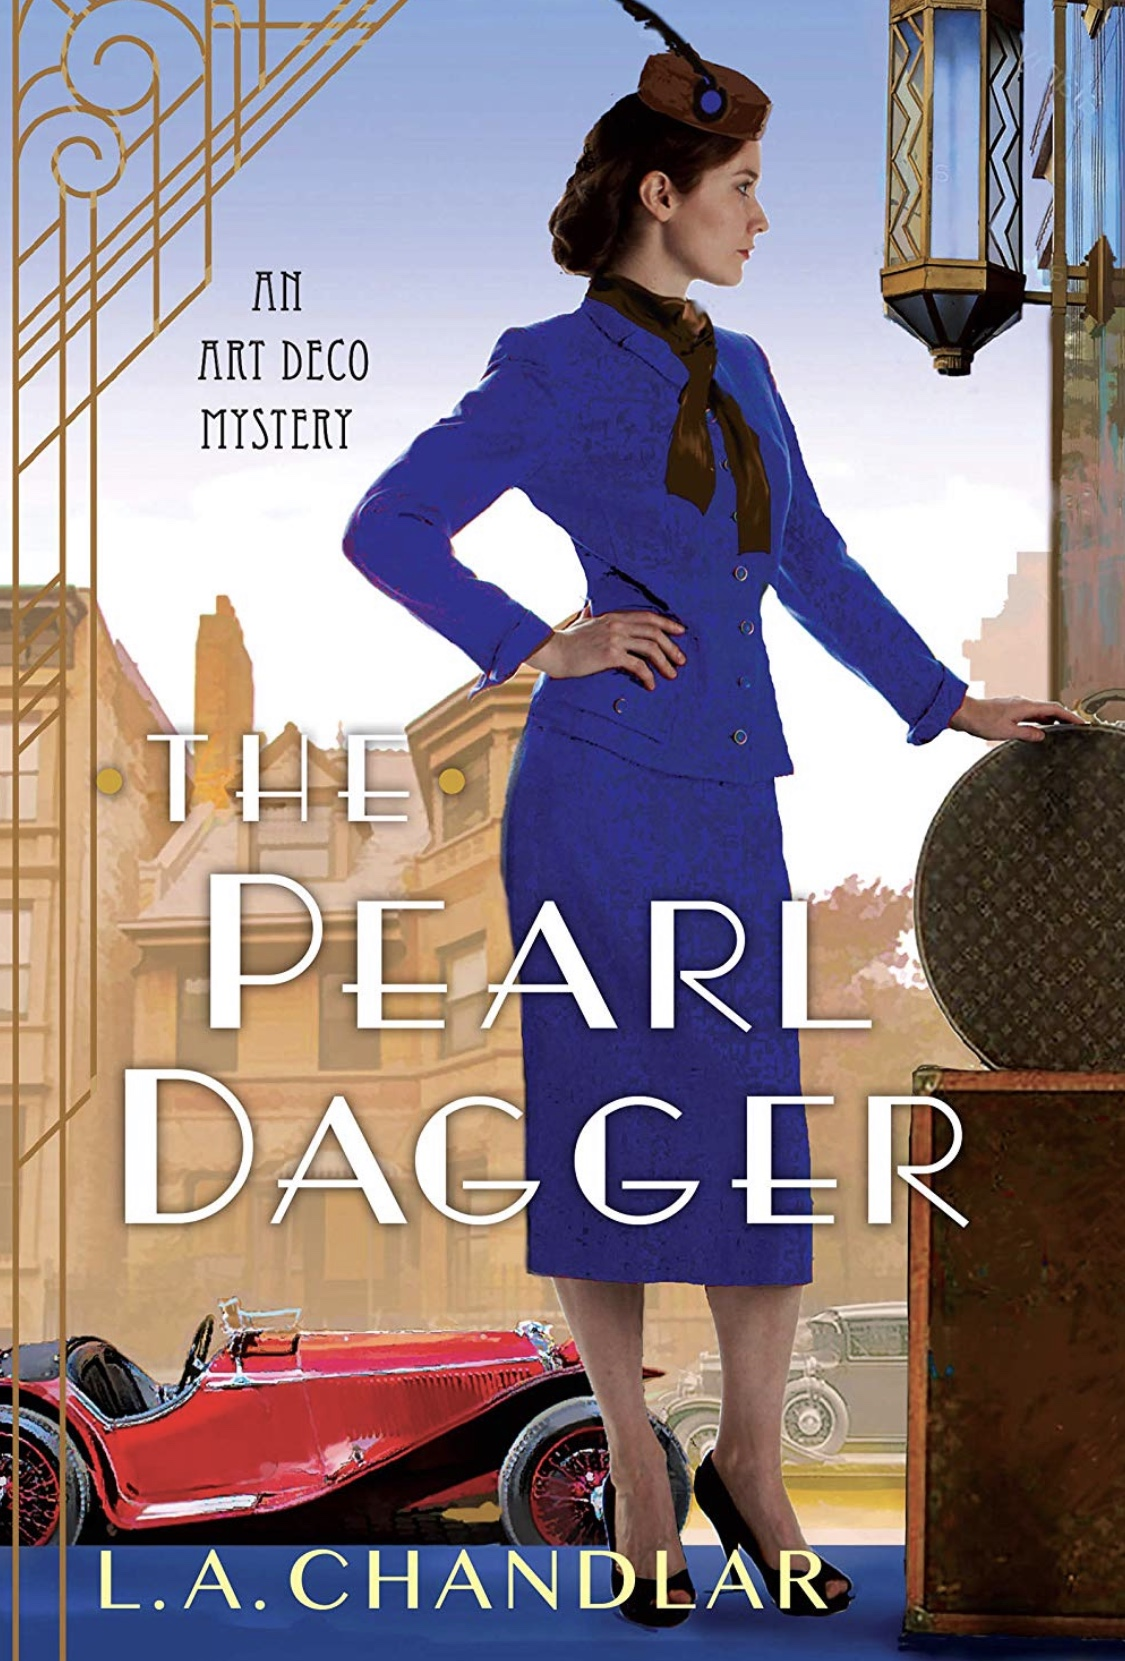 The Pearl Dagger by L.A. Chandler